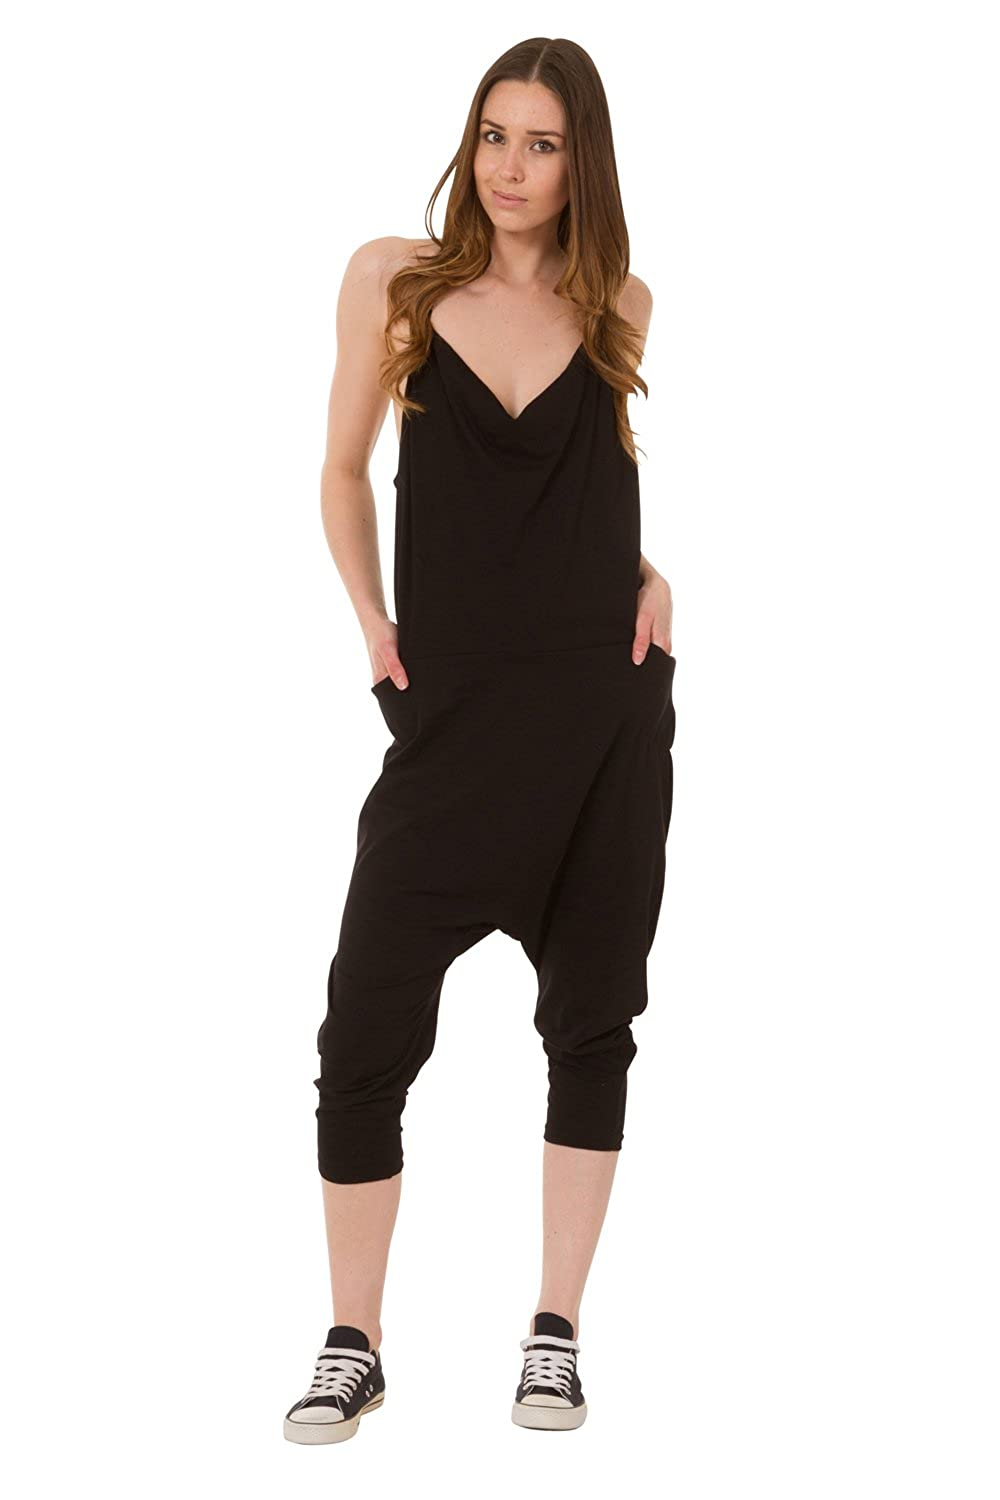 b6e2fb8725 Wash Clothing Company Jersey Jumpsuit - Black Lightweight Harem Pants  Stretch Relaxed Fit Playsuit CINDYBLACK-One Size: Amazon.co.uk: Clothing